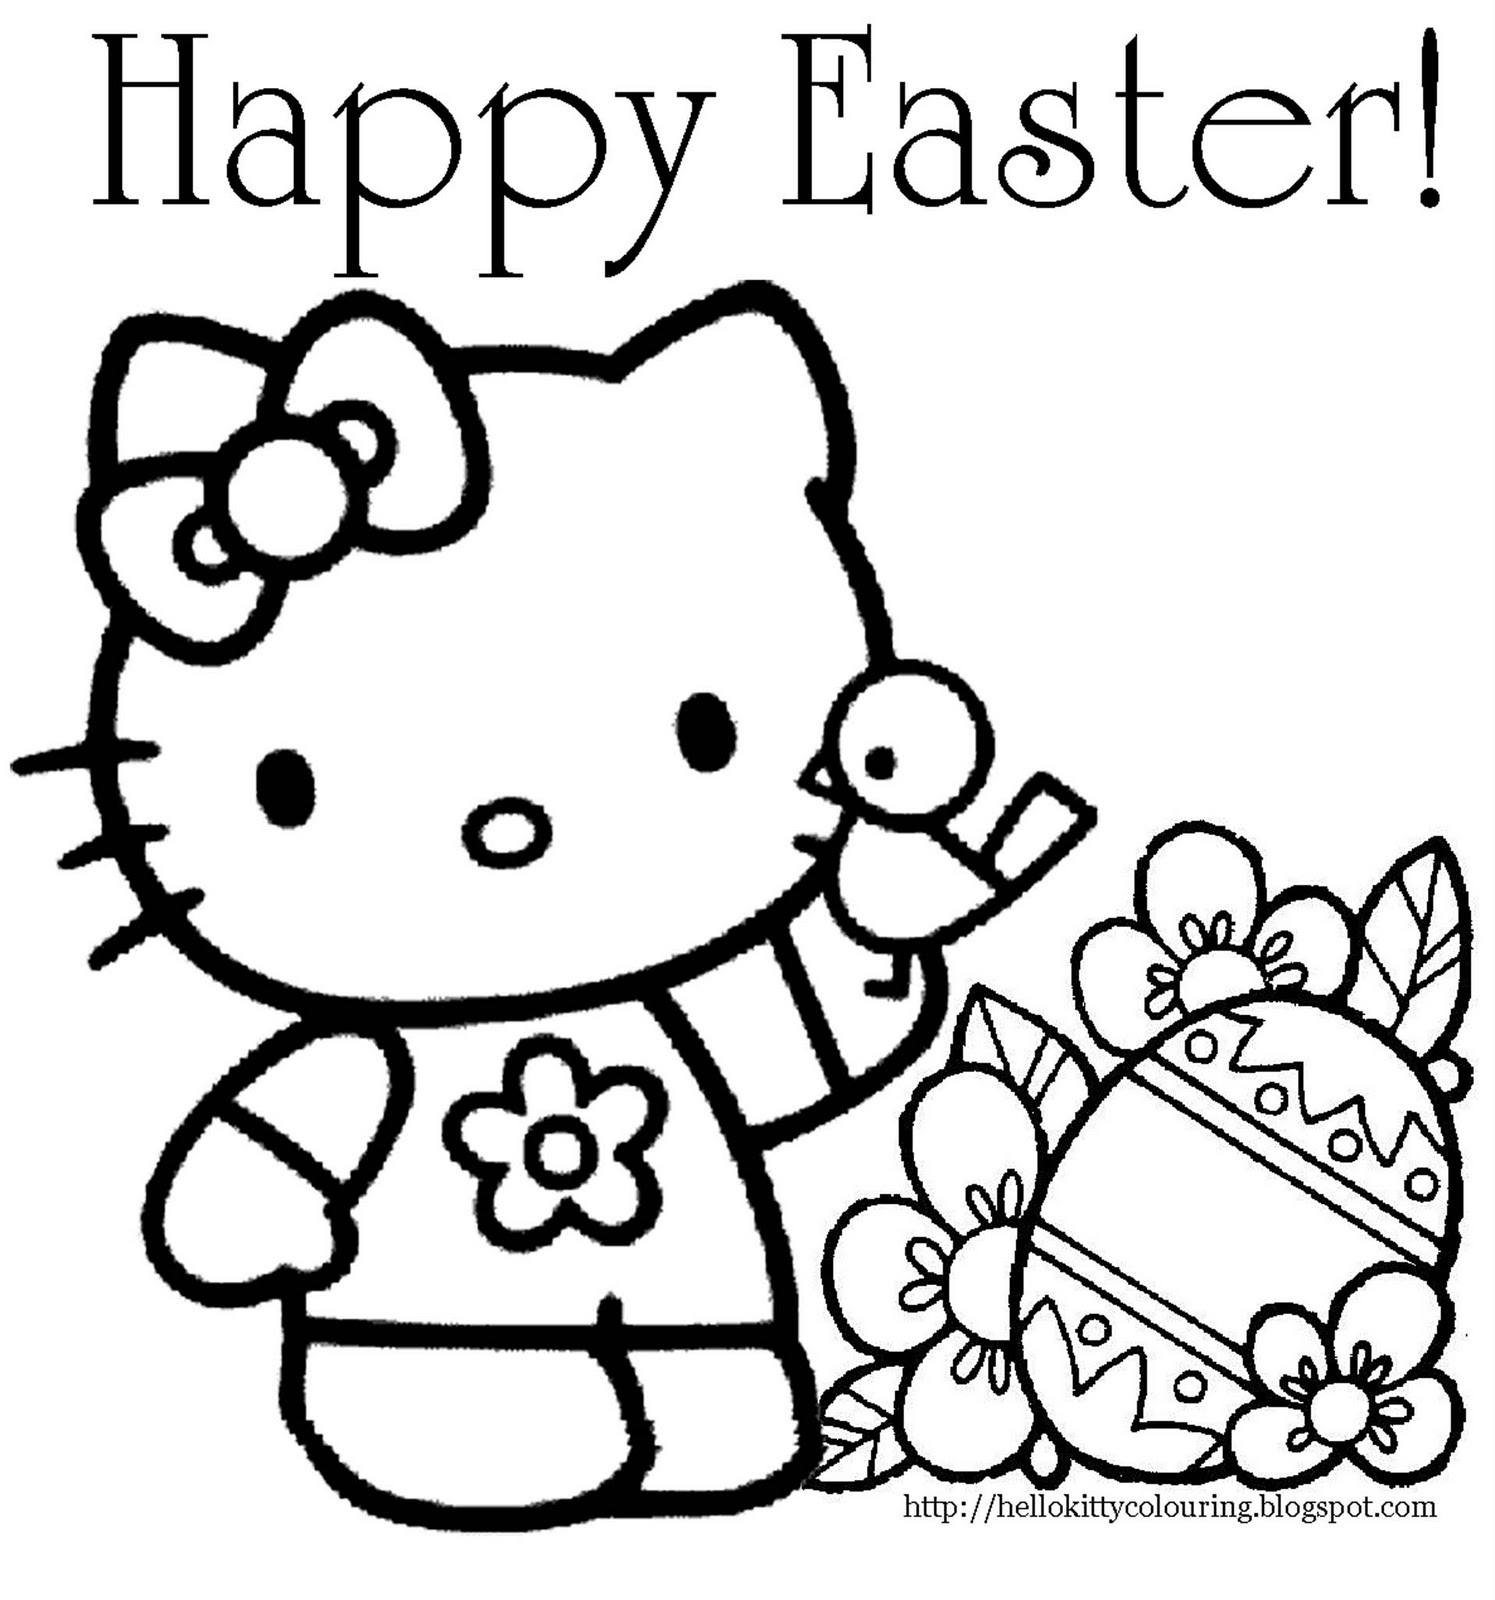 If You Would Like To Print And Color Free Hello Kitty Coloring Pages That Are Not Easter Themed Please Visit Our Sister Site